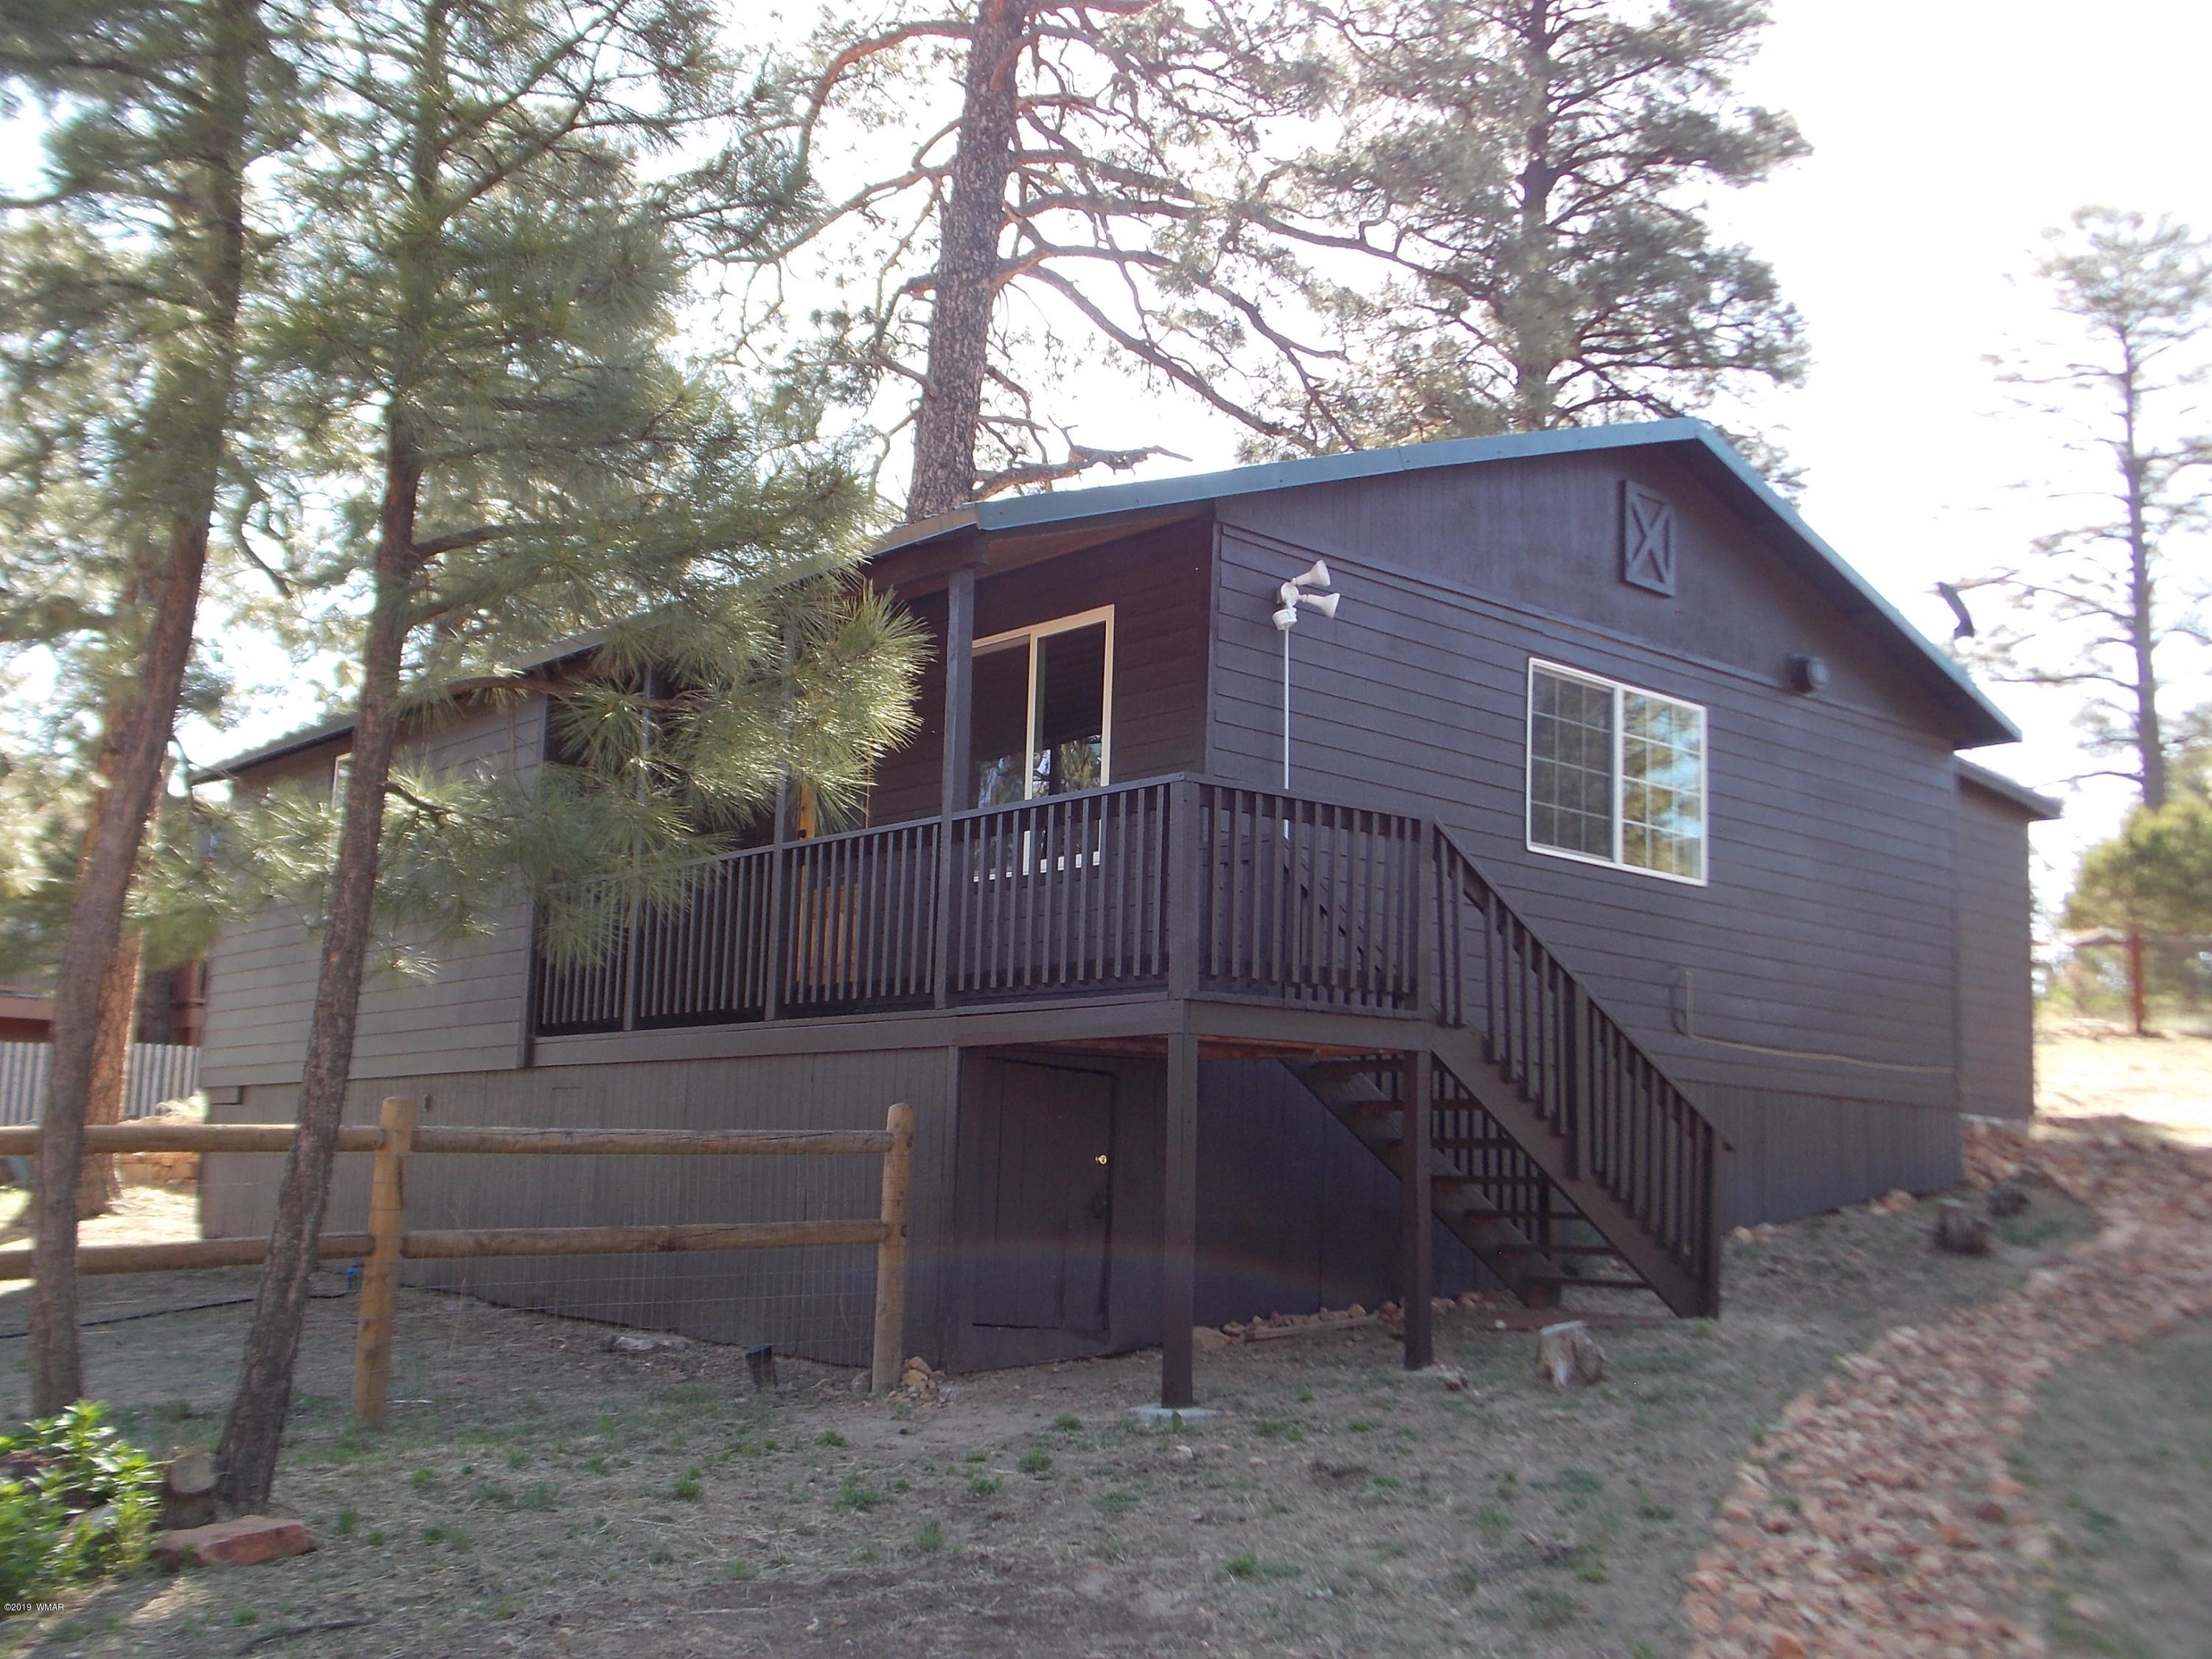 Great cabin for  the kids and Fido to have plenty of fun in the fenced yard with kids play area.  Enjoy all year long for a full time residence or use as that summer get-a-way to get out of the heat.  Freshly painted exterior-METAL roof-new deck off the master BDRM-skylights-vaulted T&G ceiling -and laminate flooring throughout.  Screened in porch-large-shed for plenty of storage-RV gate and plenty of parking.  One of the larger lots in the neighborhood as it is .45 of an acre.